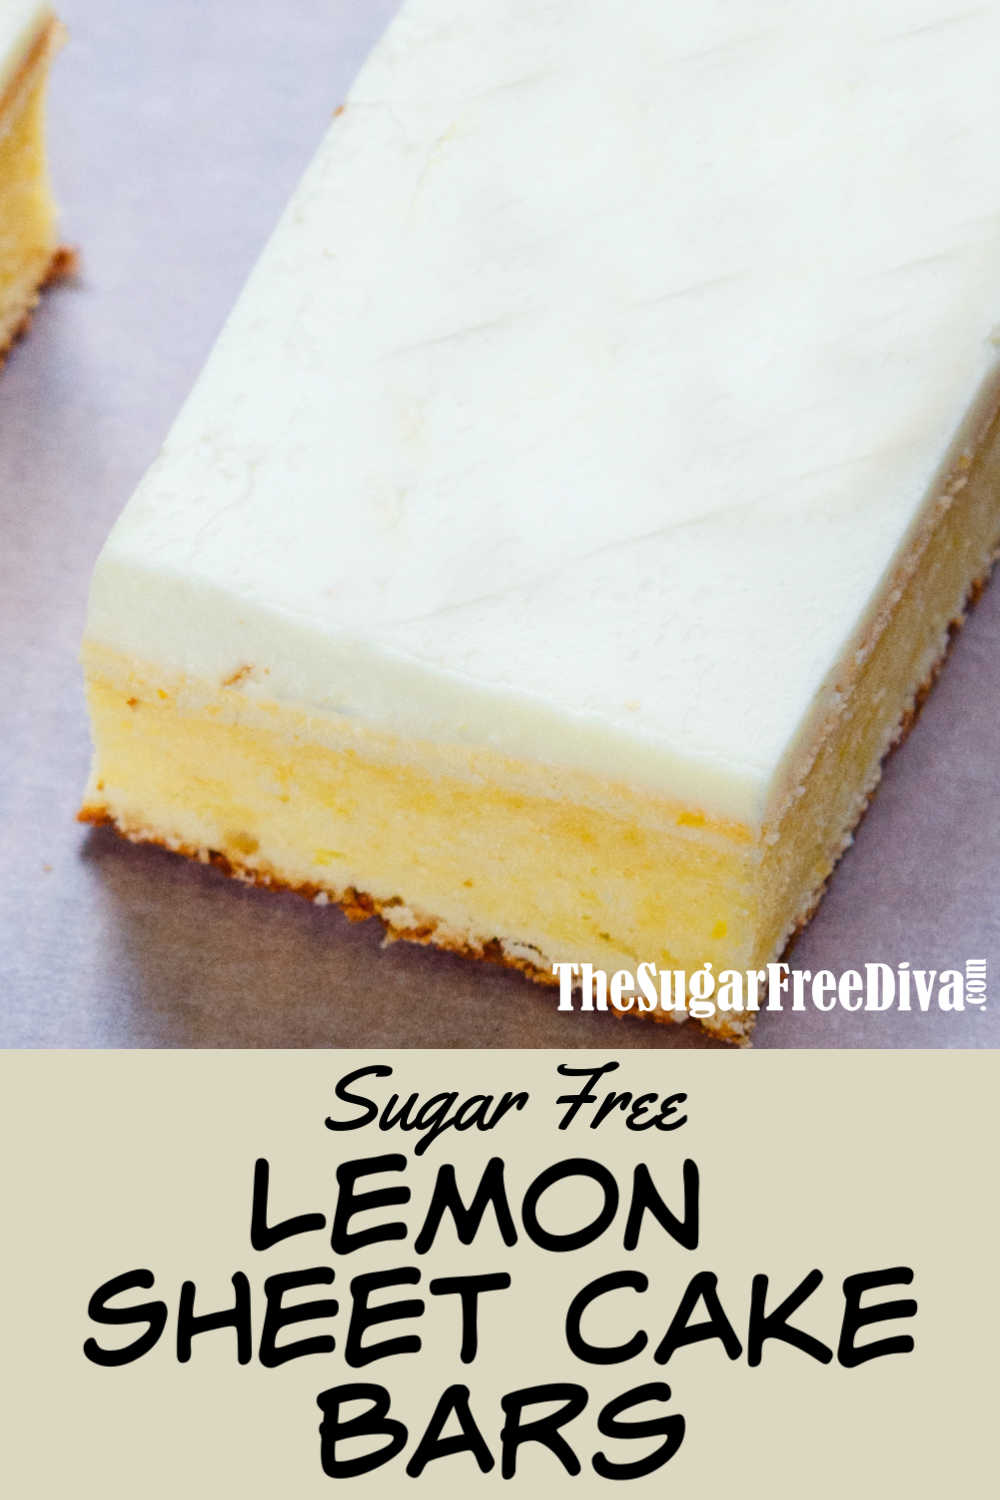 Sugar Free Lemon Sheet Cake Bars